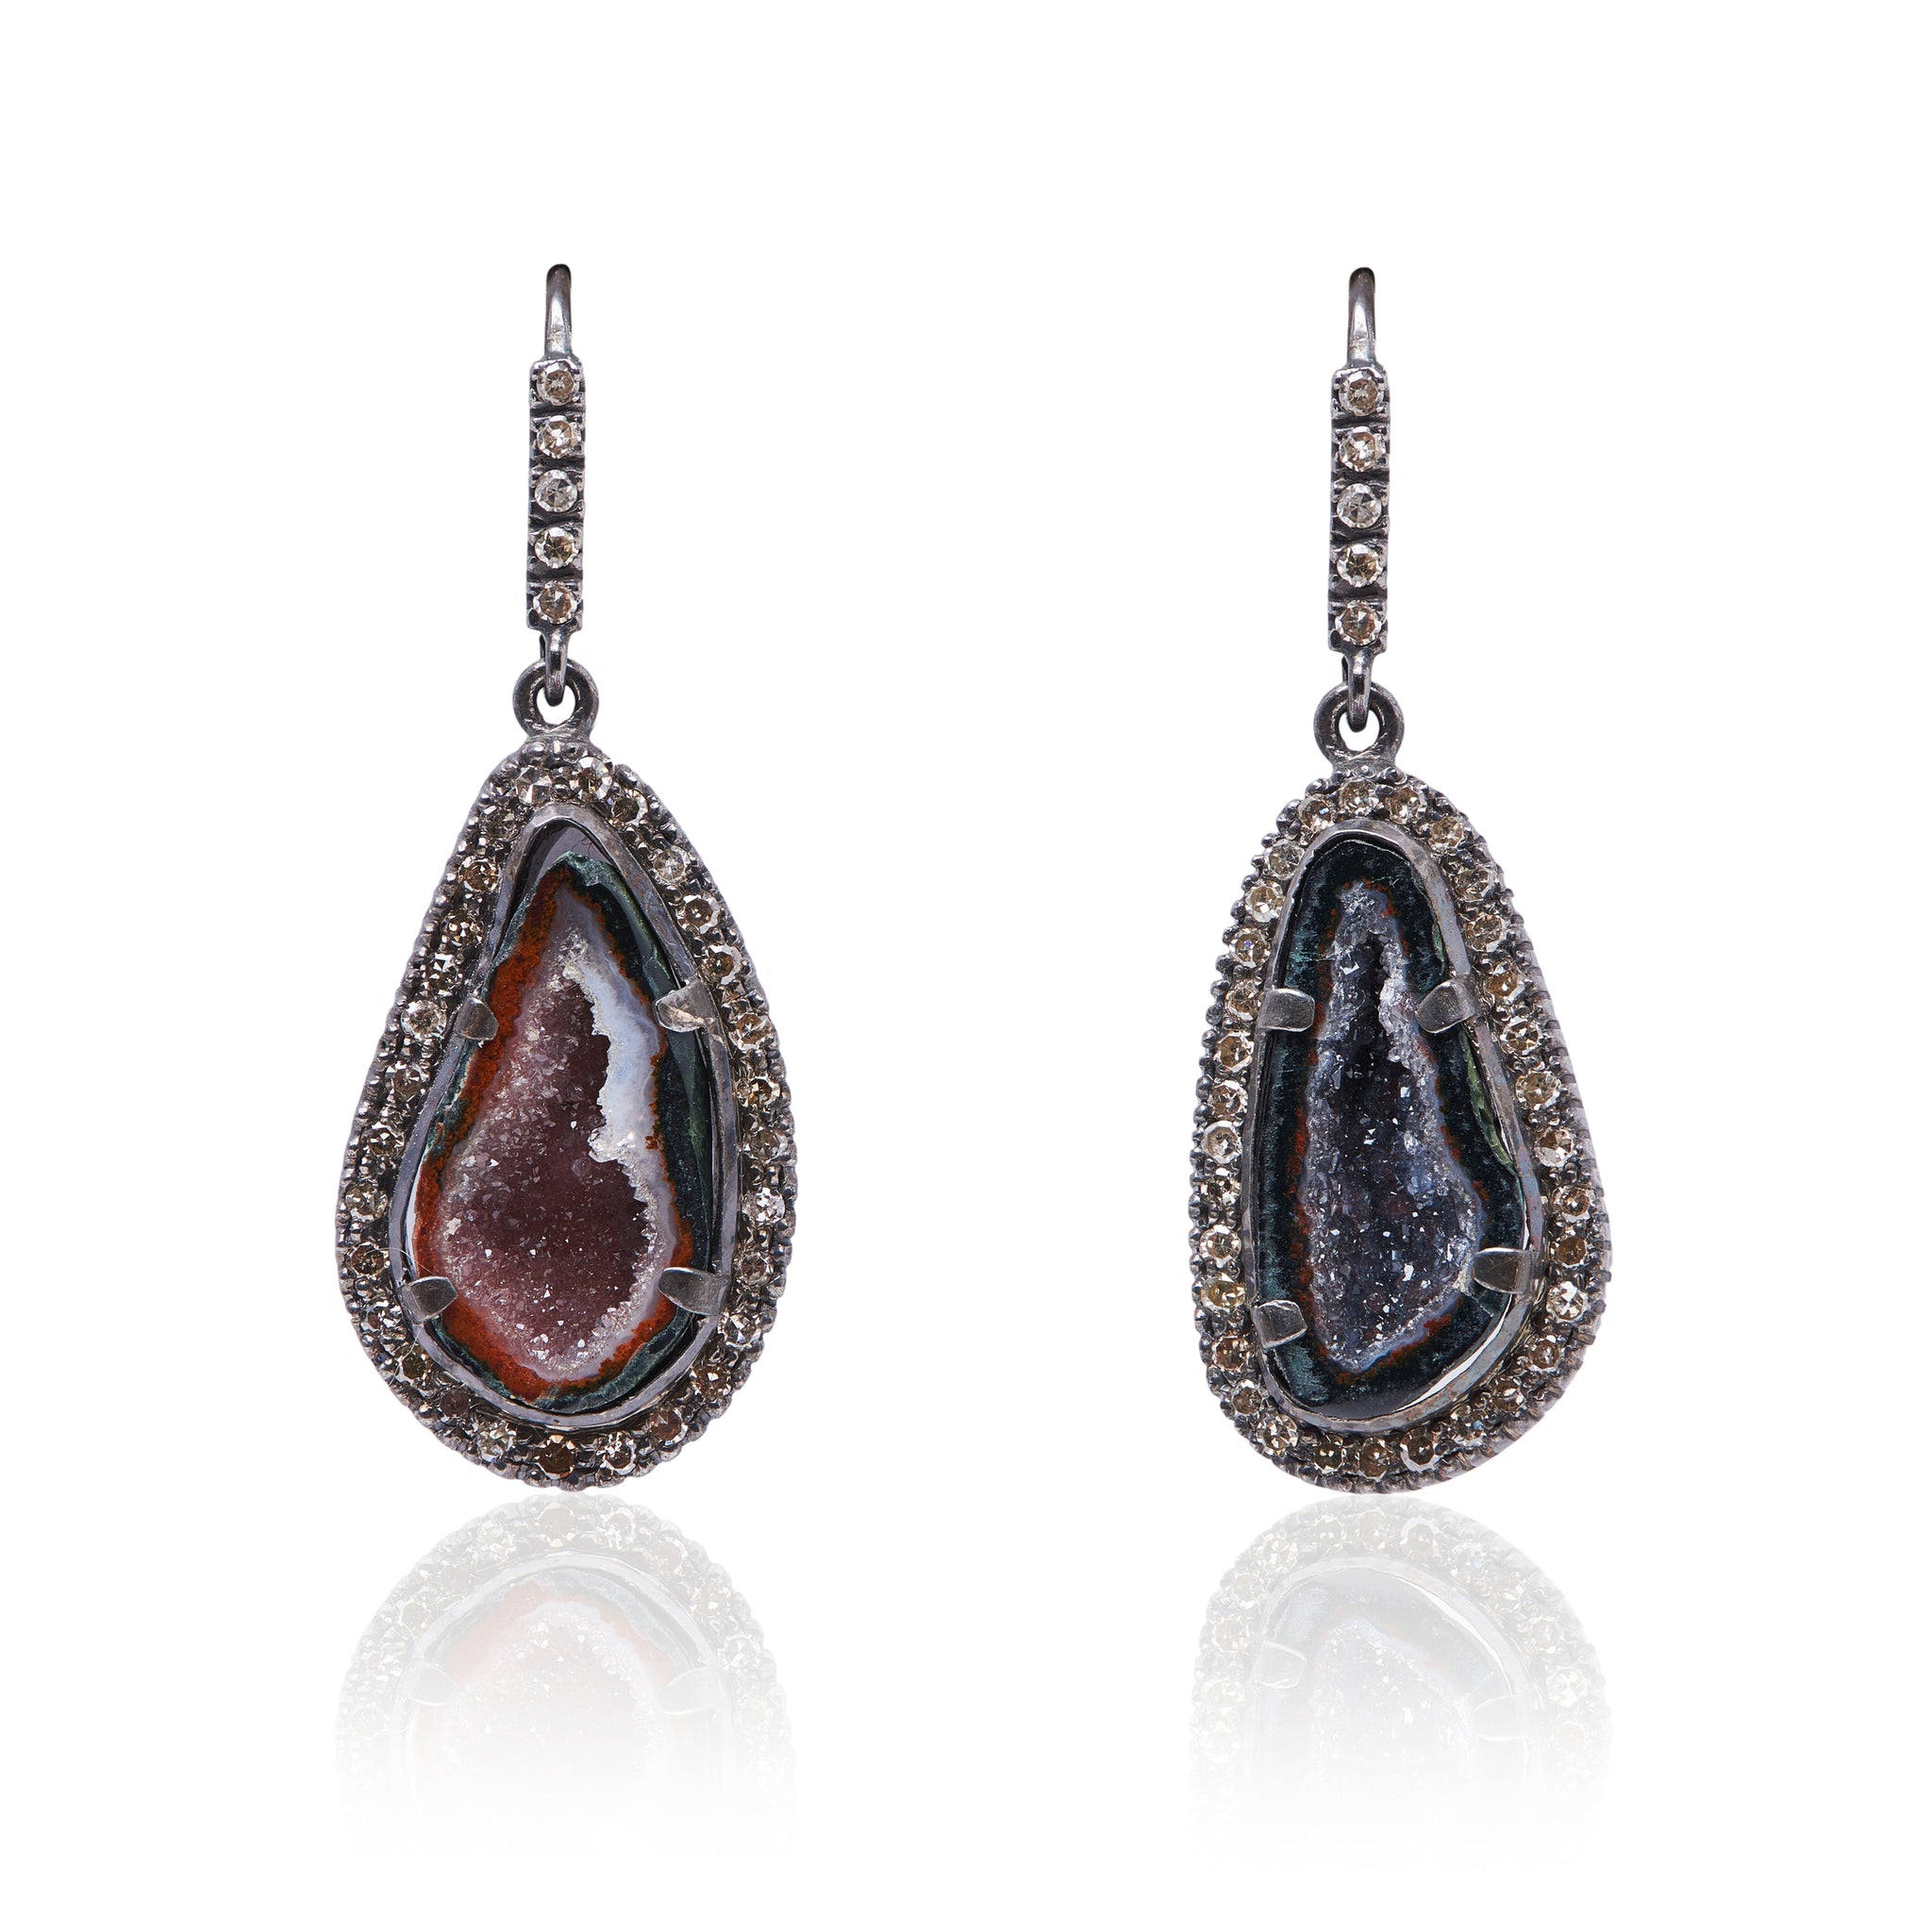 jasper druzy earrings with diamonds made in sterling silver